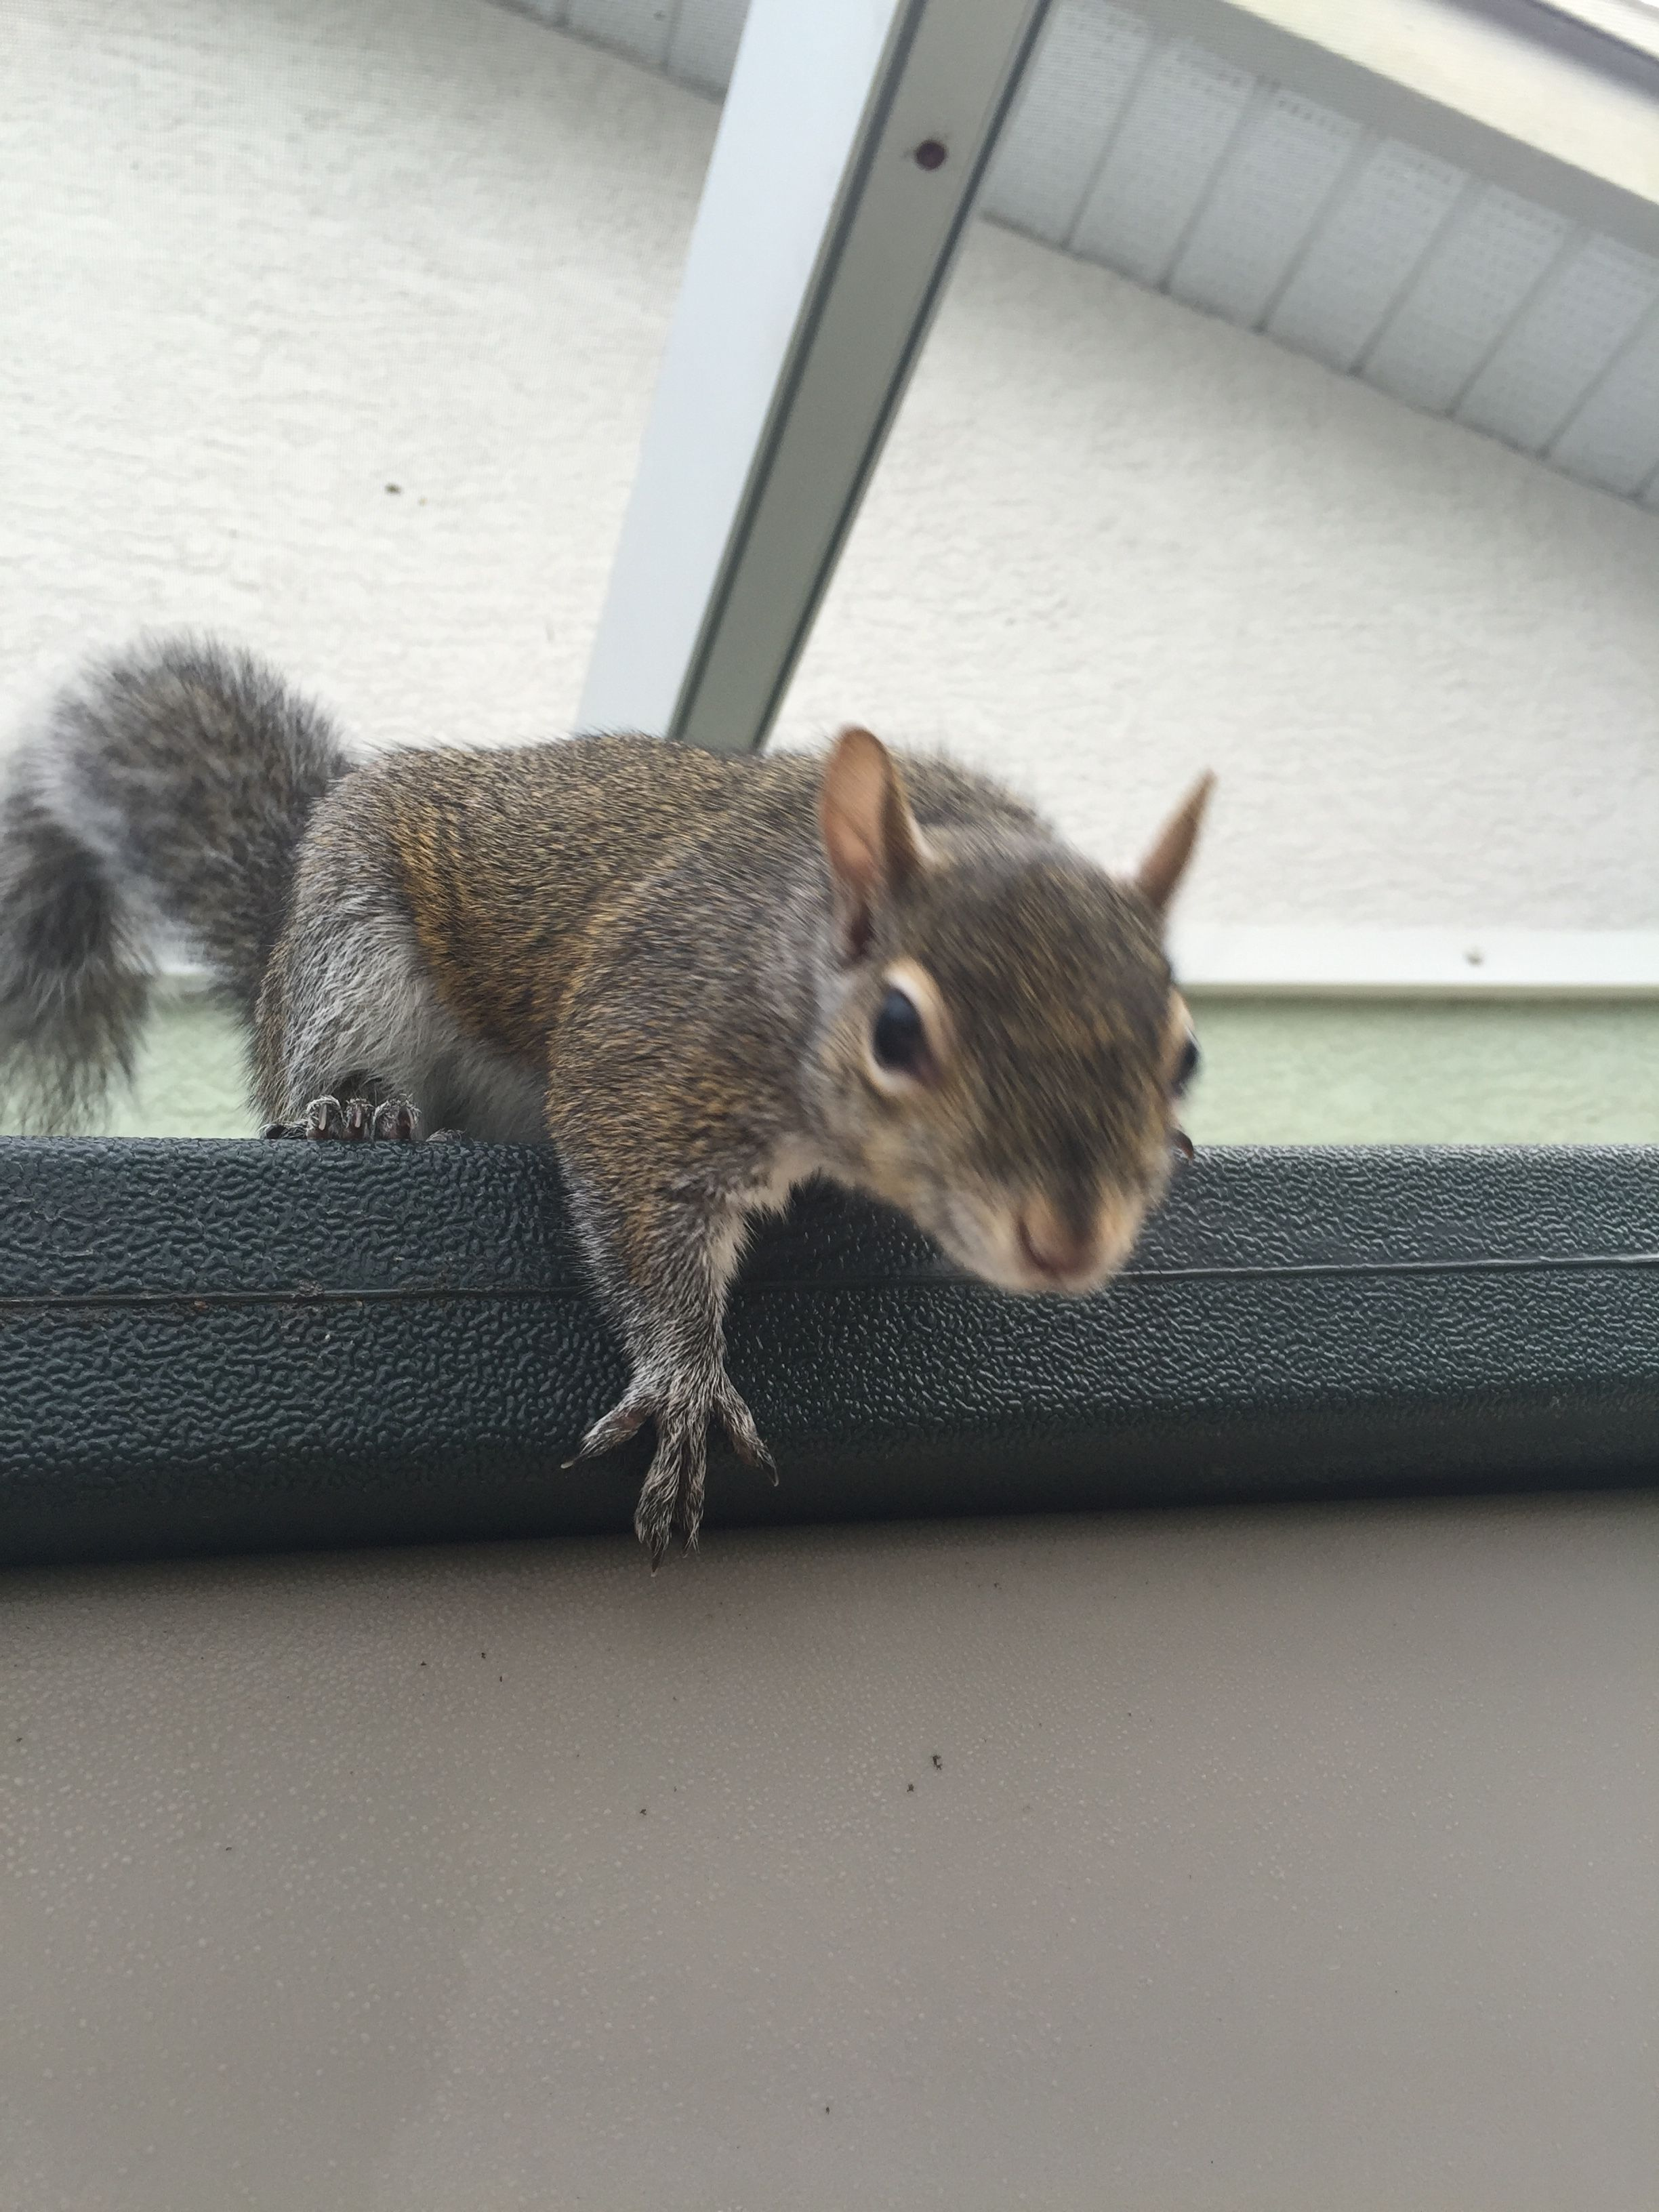 Hey i know you up squirrel squirrel lovely creatures